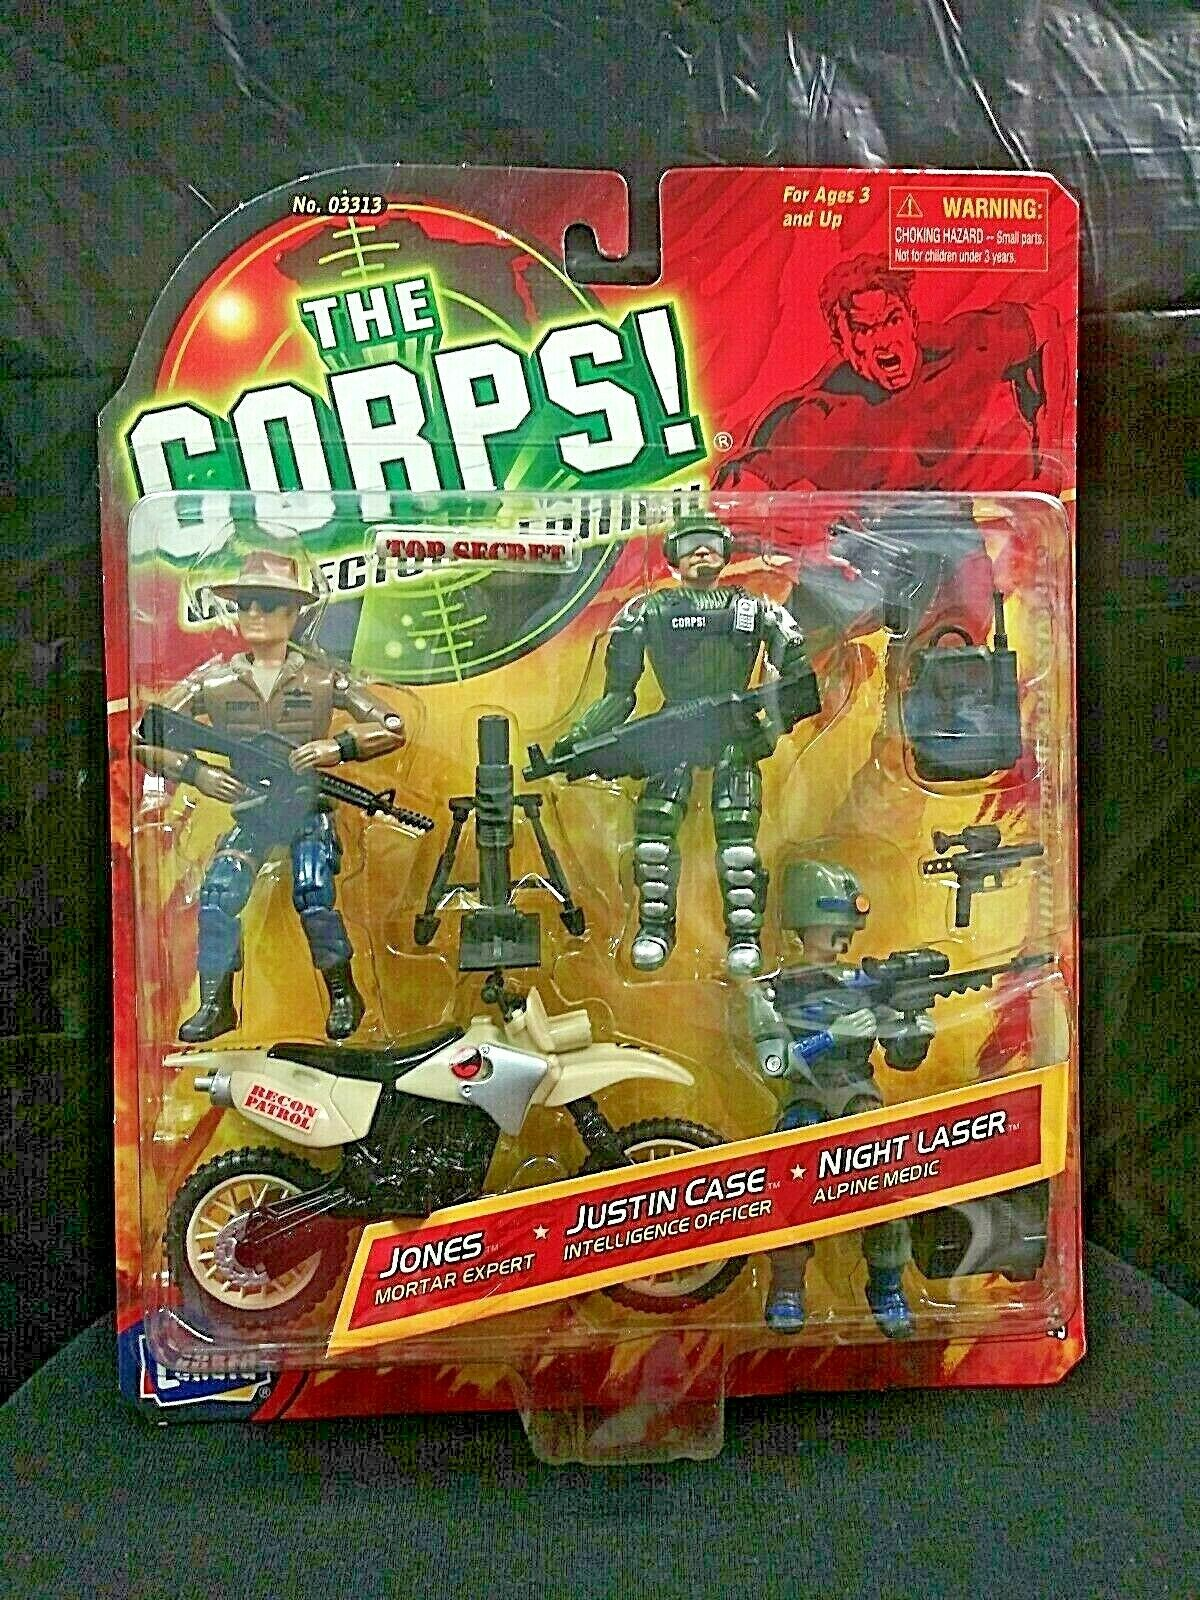 LANARD TOYS THE CORPS COLLECTORS EDITION 2001 JONES, JUSTIN CASE & NIGHT LASER